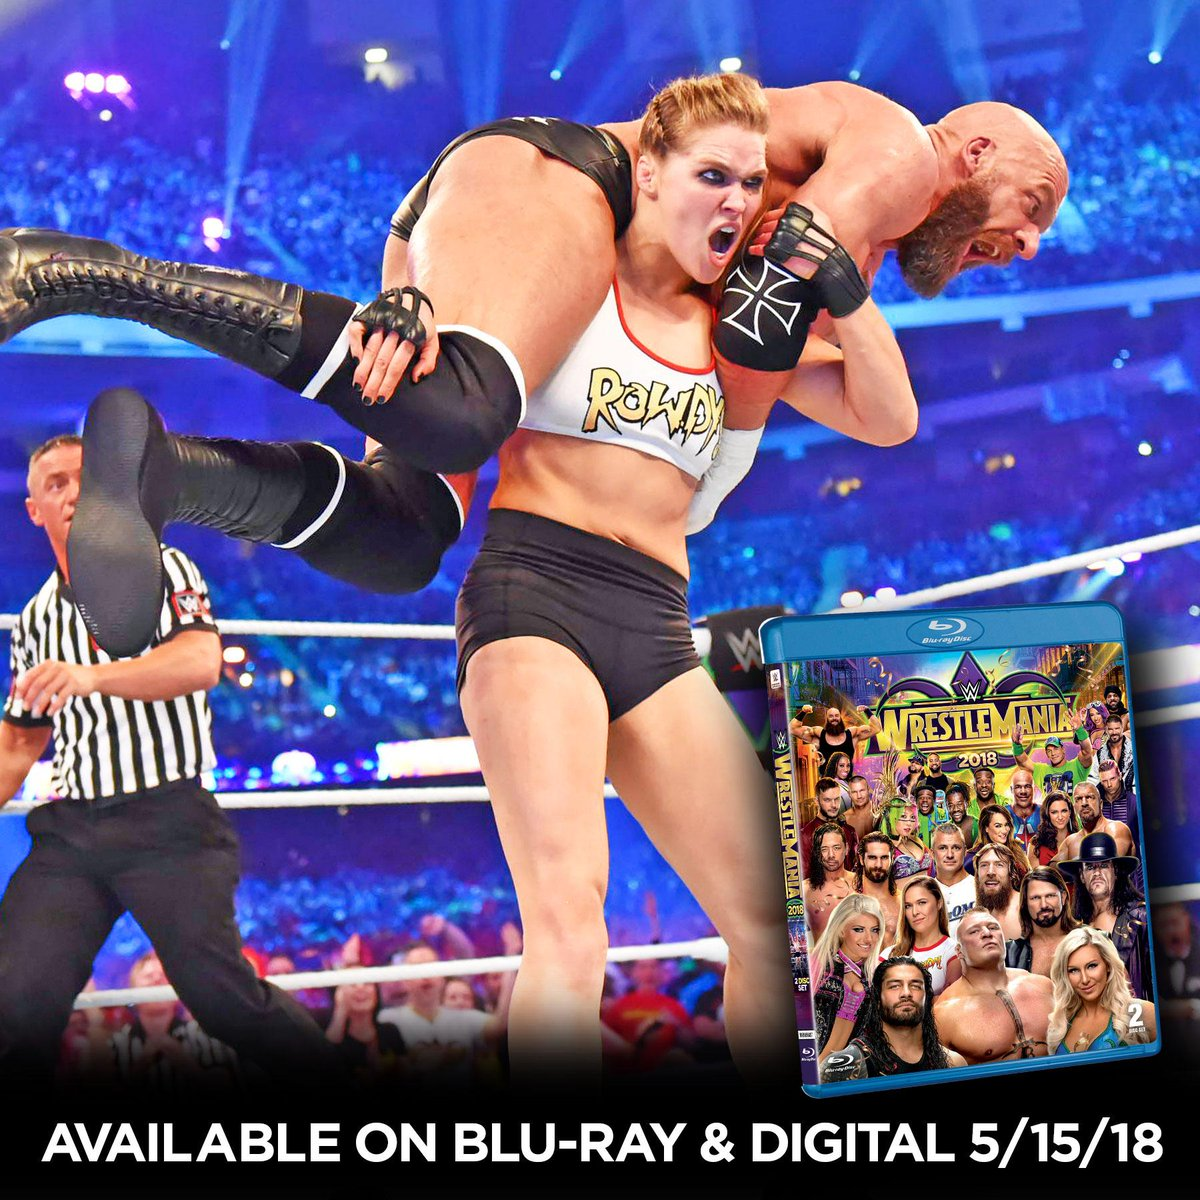 The #BaddestWomanOnThePlanet and the #BaddestWrestleManiaDebutOnThePlanet. #WrestleMania 34 is available now on Blu-ray at @BestBuy! @RondaRousey